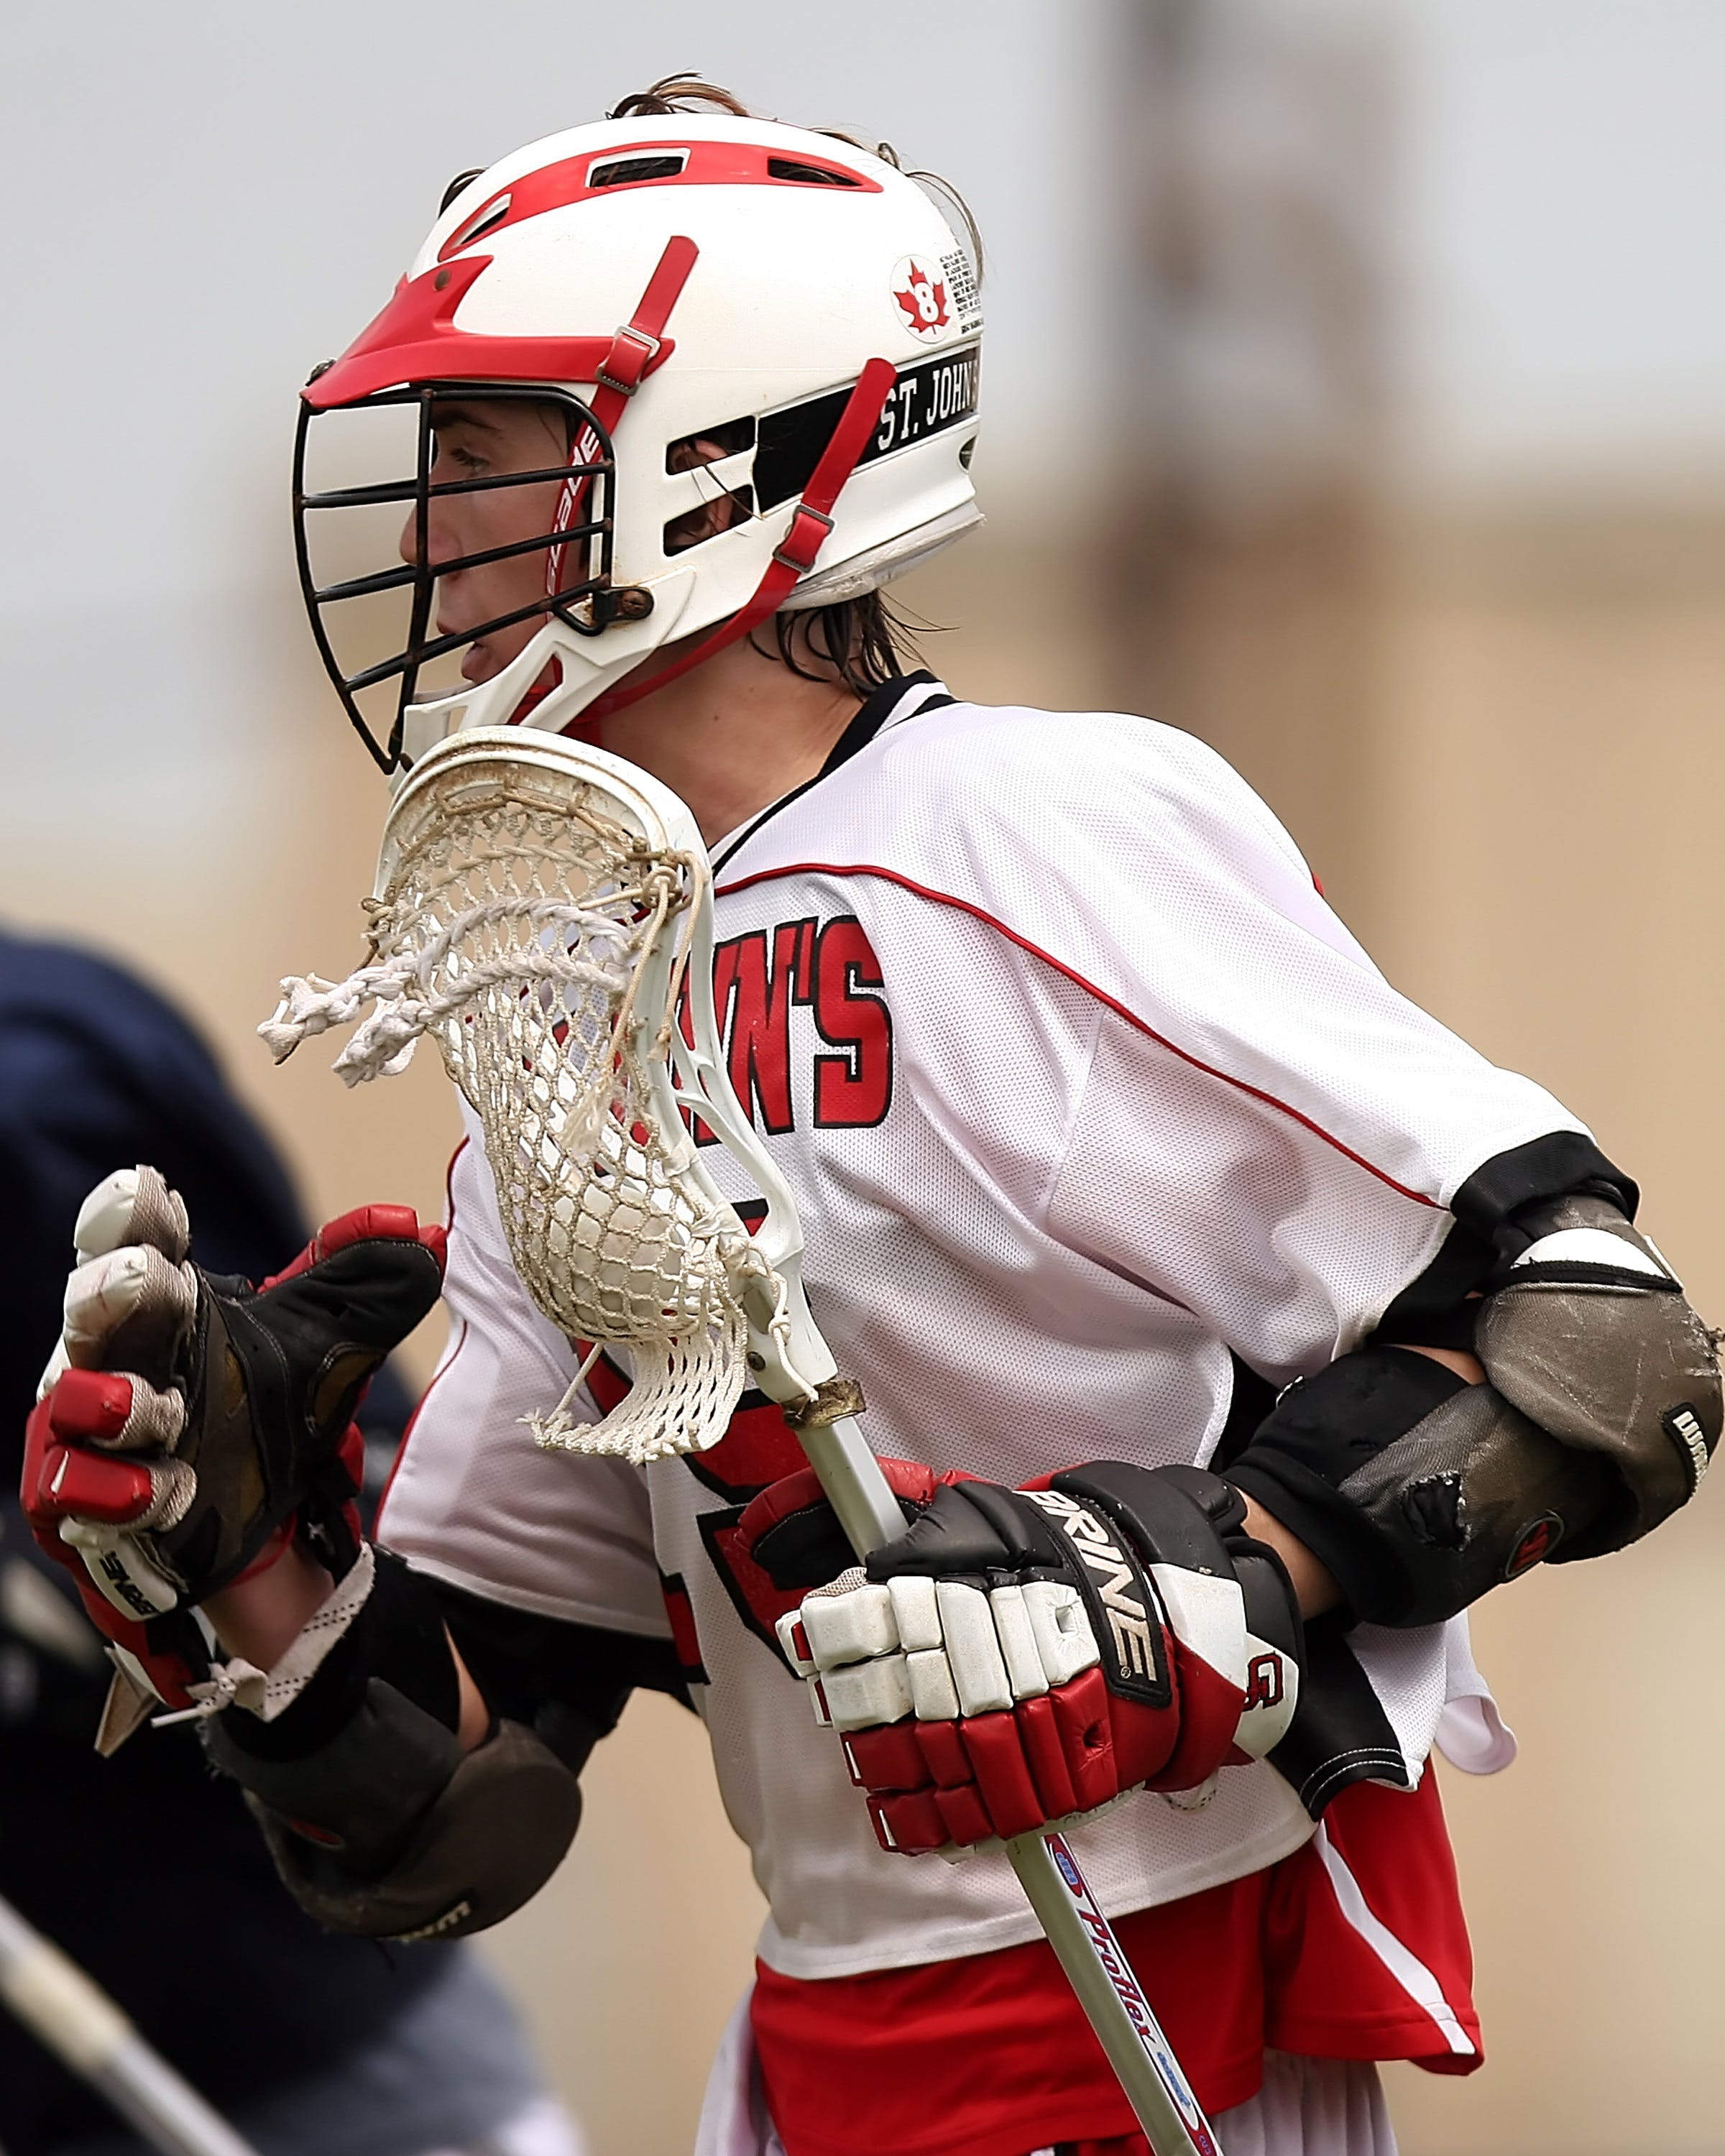 Man Wearing White and Red Lacrosse Uniform